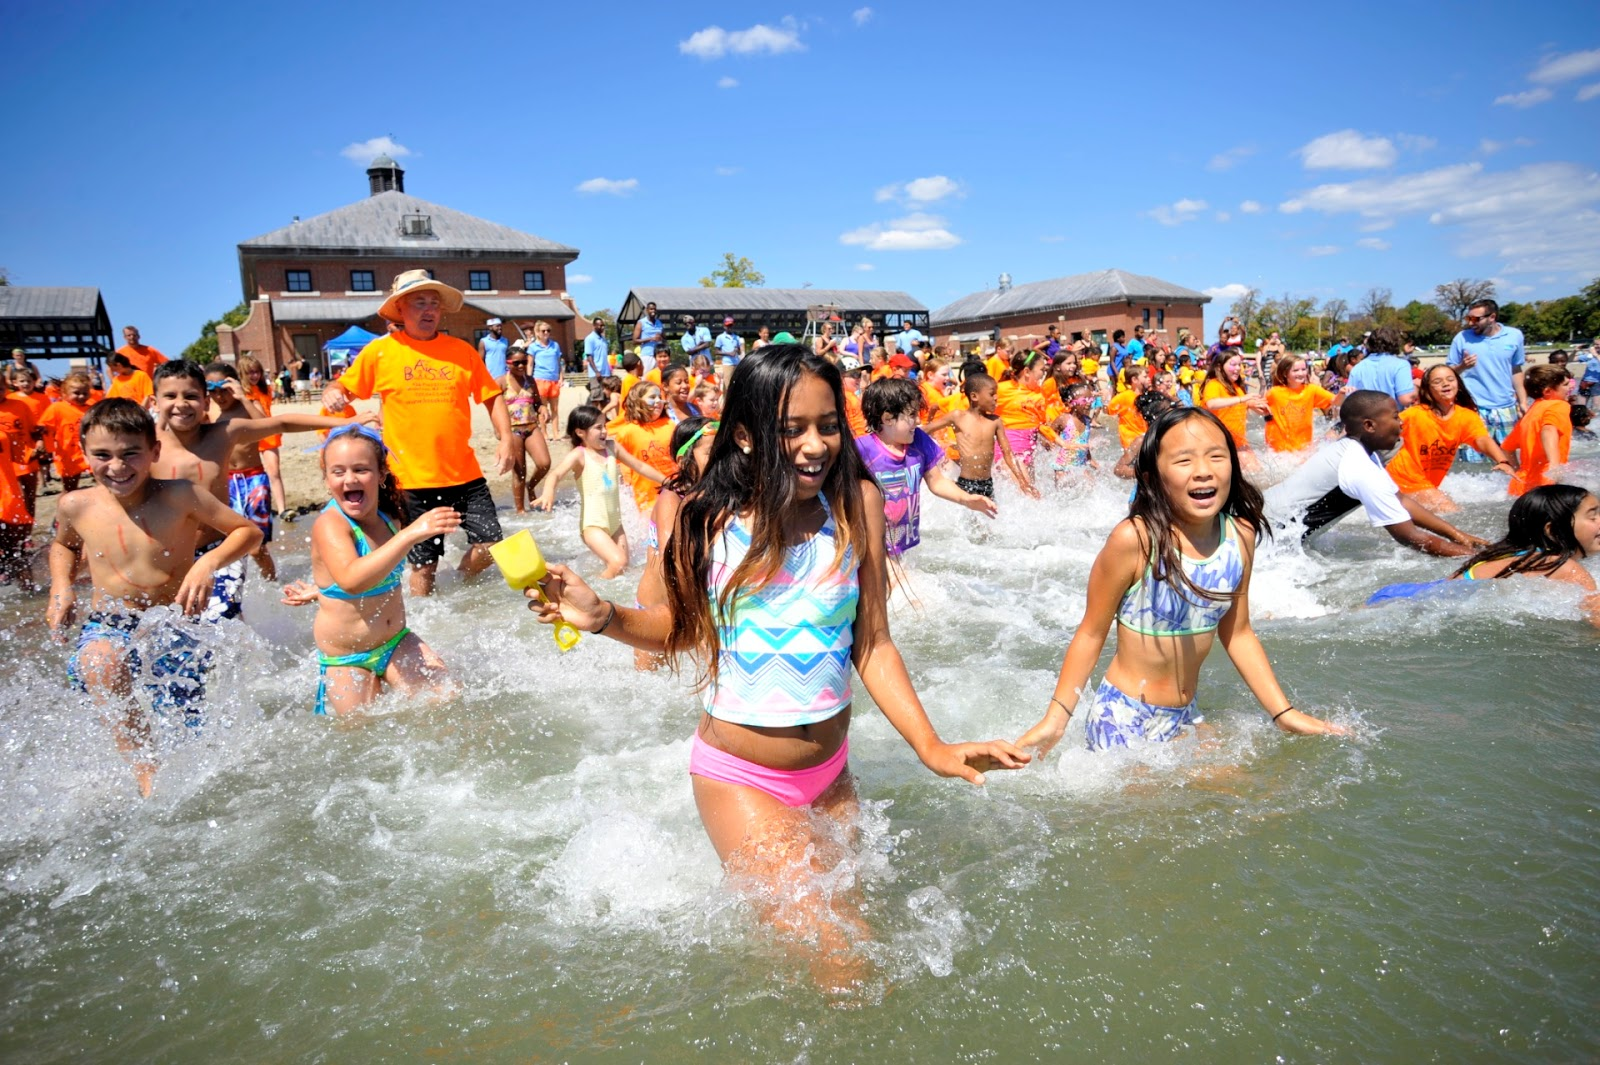 bf176a6b88 More than 600 kids took part in the Kids Beach Bash & Splash at DCR's  Carson Beach in South Boston in 2015. This year's Better Beaches Program  Grants will